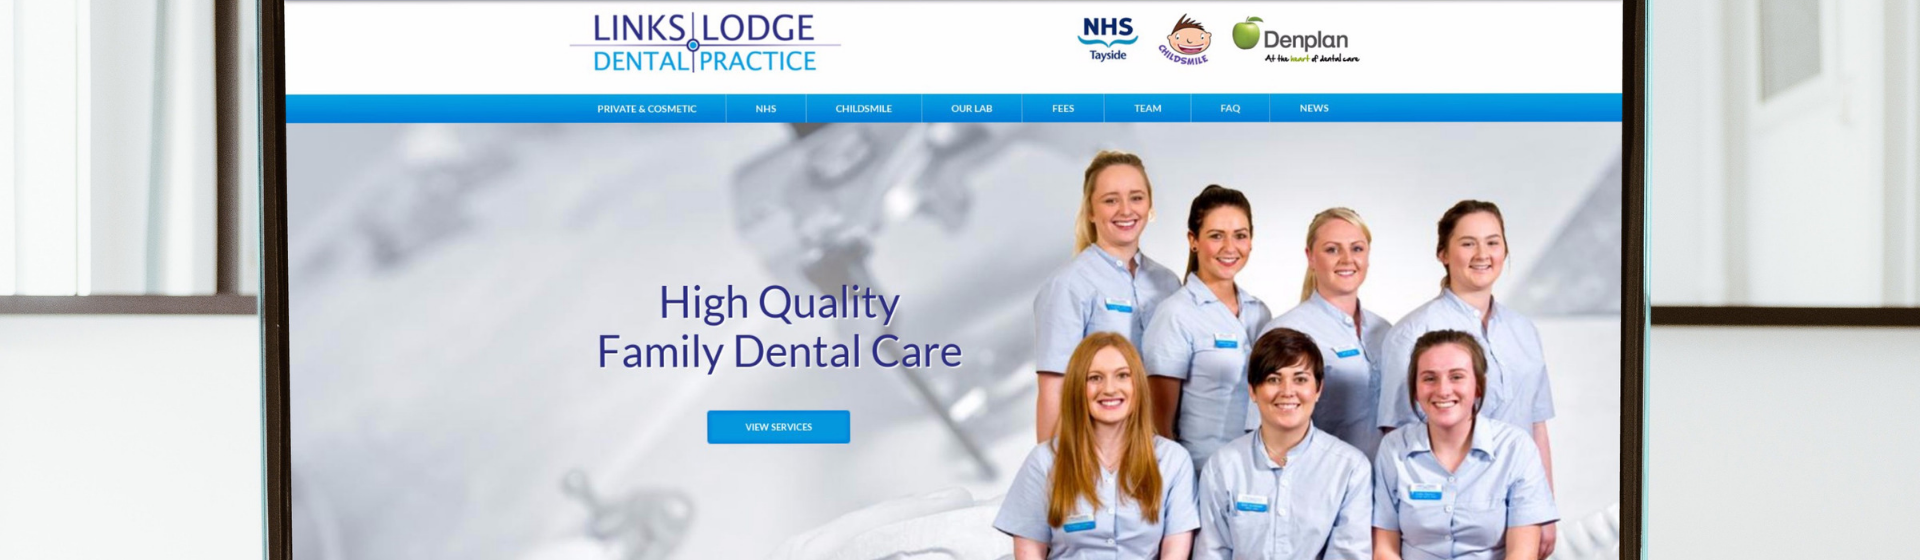 Links Lodge Dental Practice